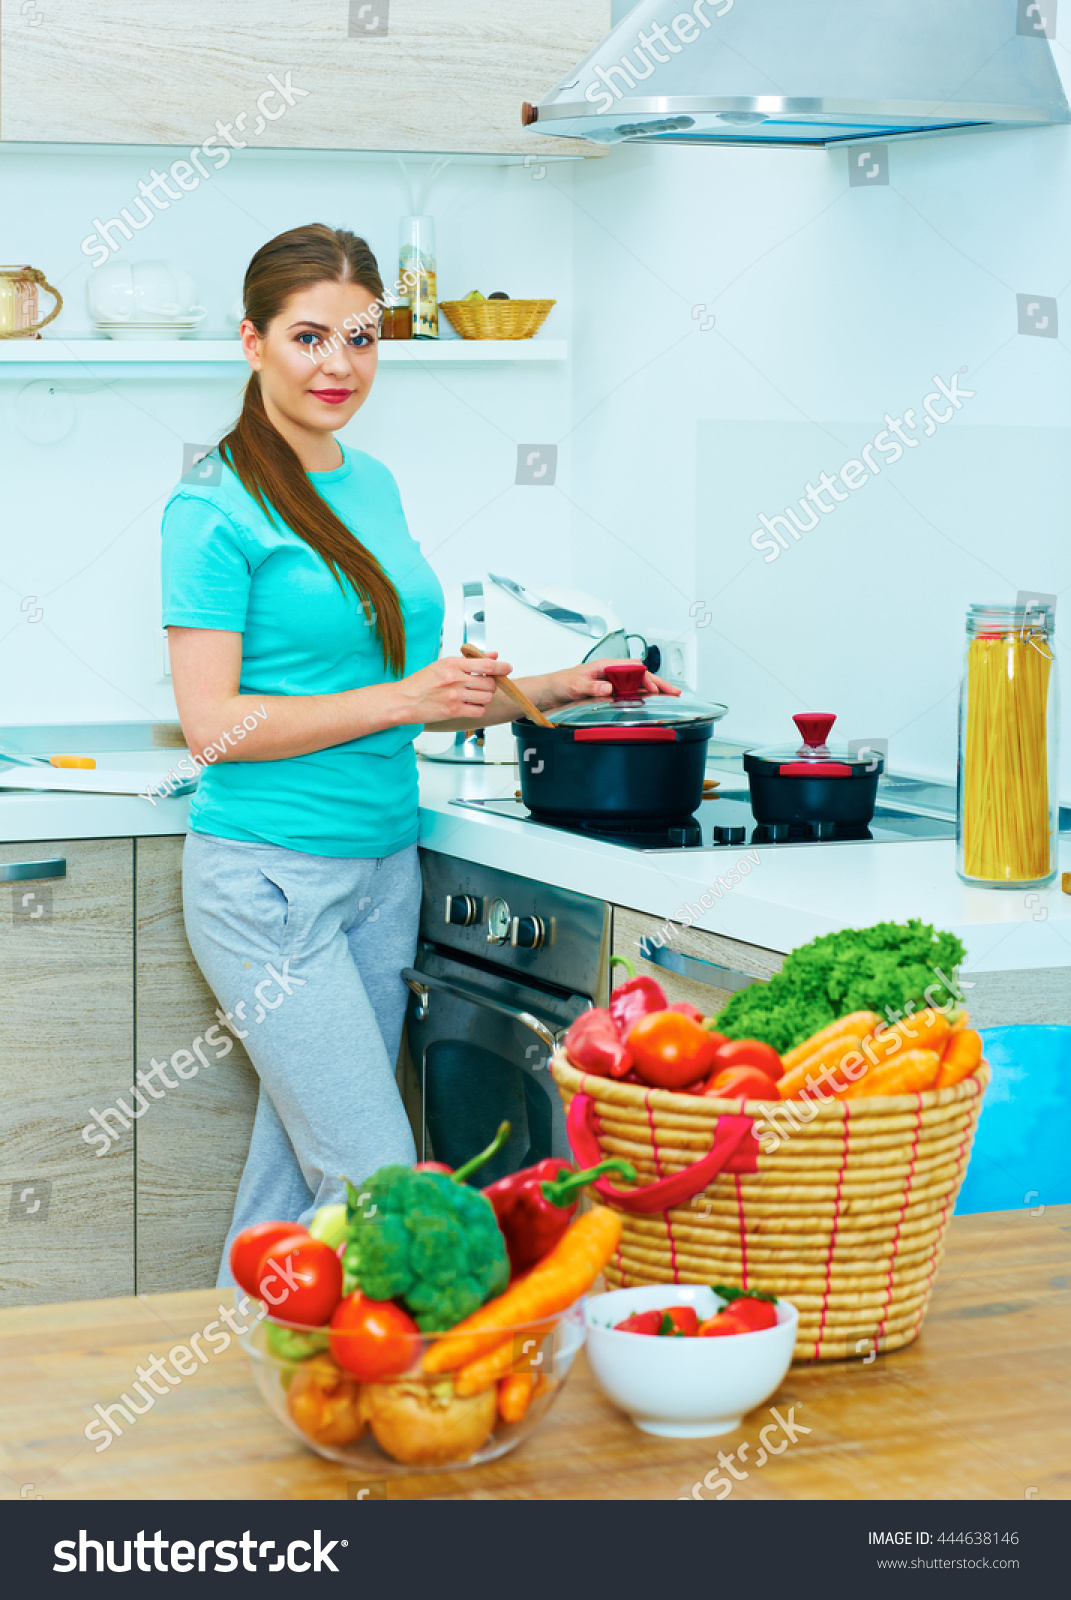 Portrait Young Woman Kitchen Cooking Food Stock Photo (Royalty Free ...